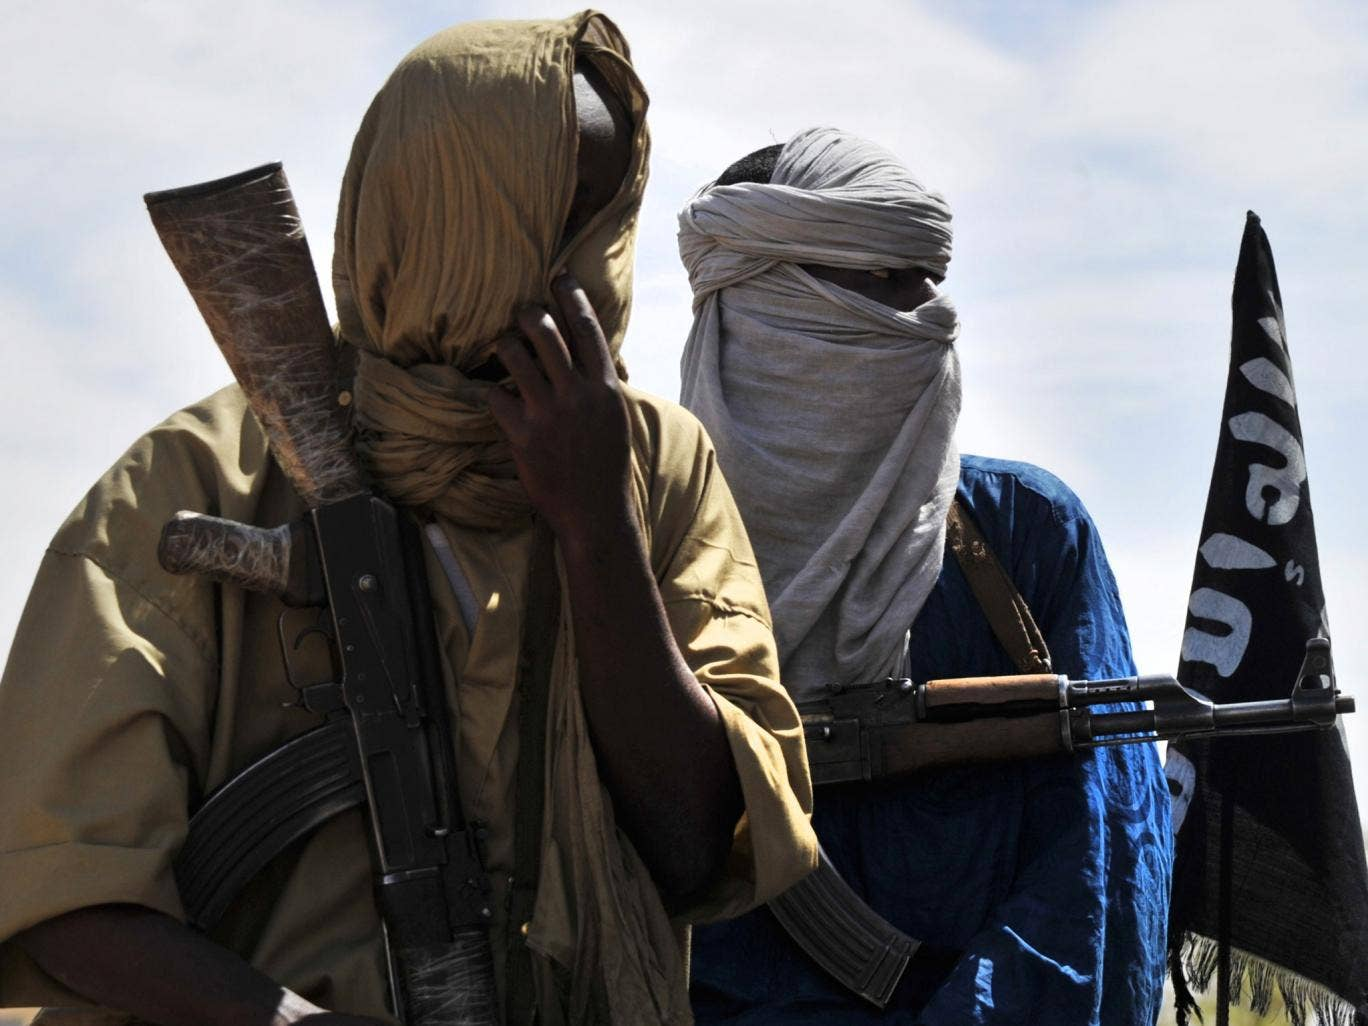 Islamist police have been imposing their version of Islam across northern Mali